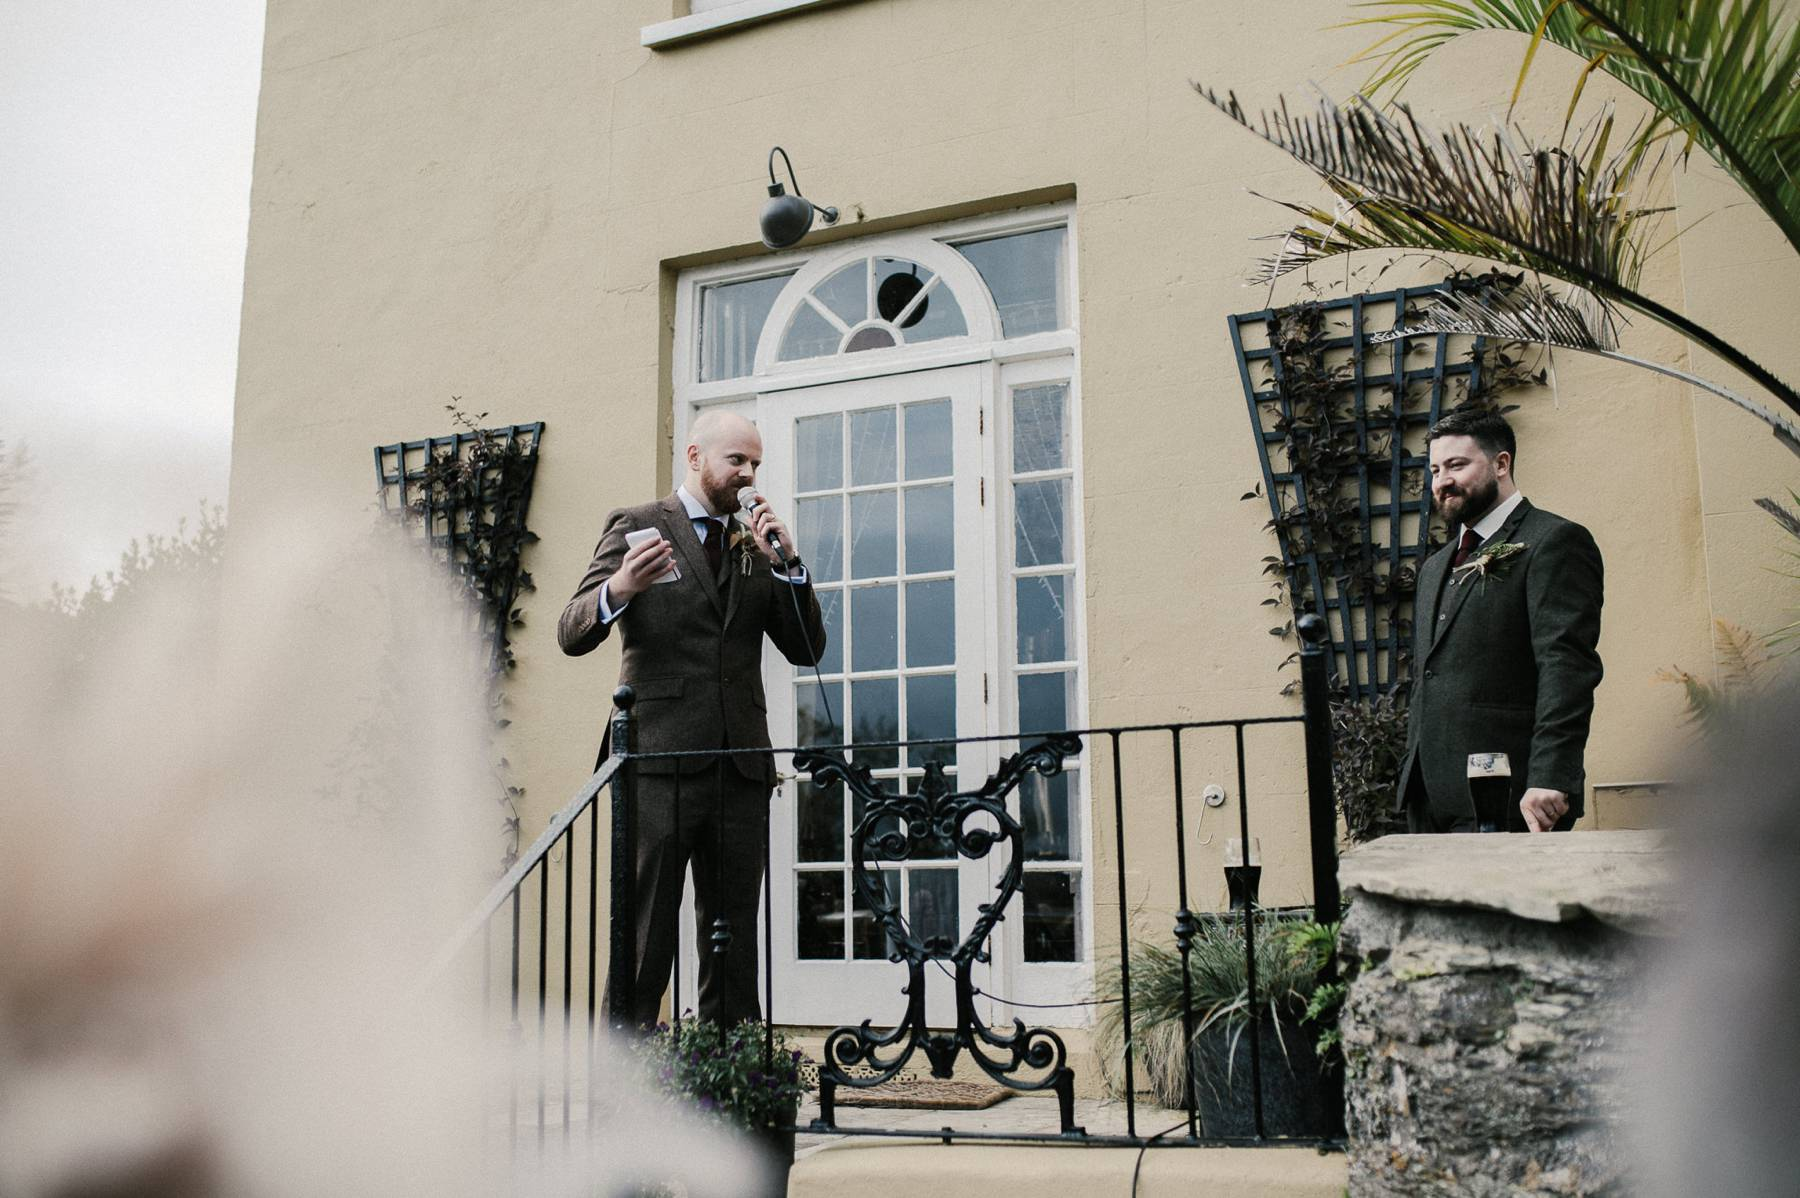 Speech at Ballinacurra house